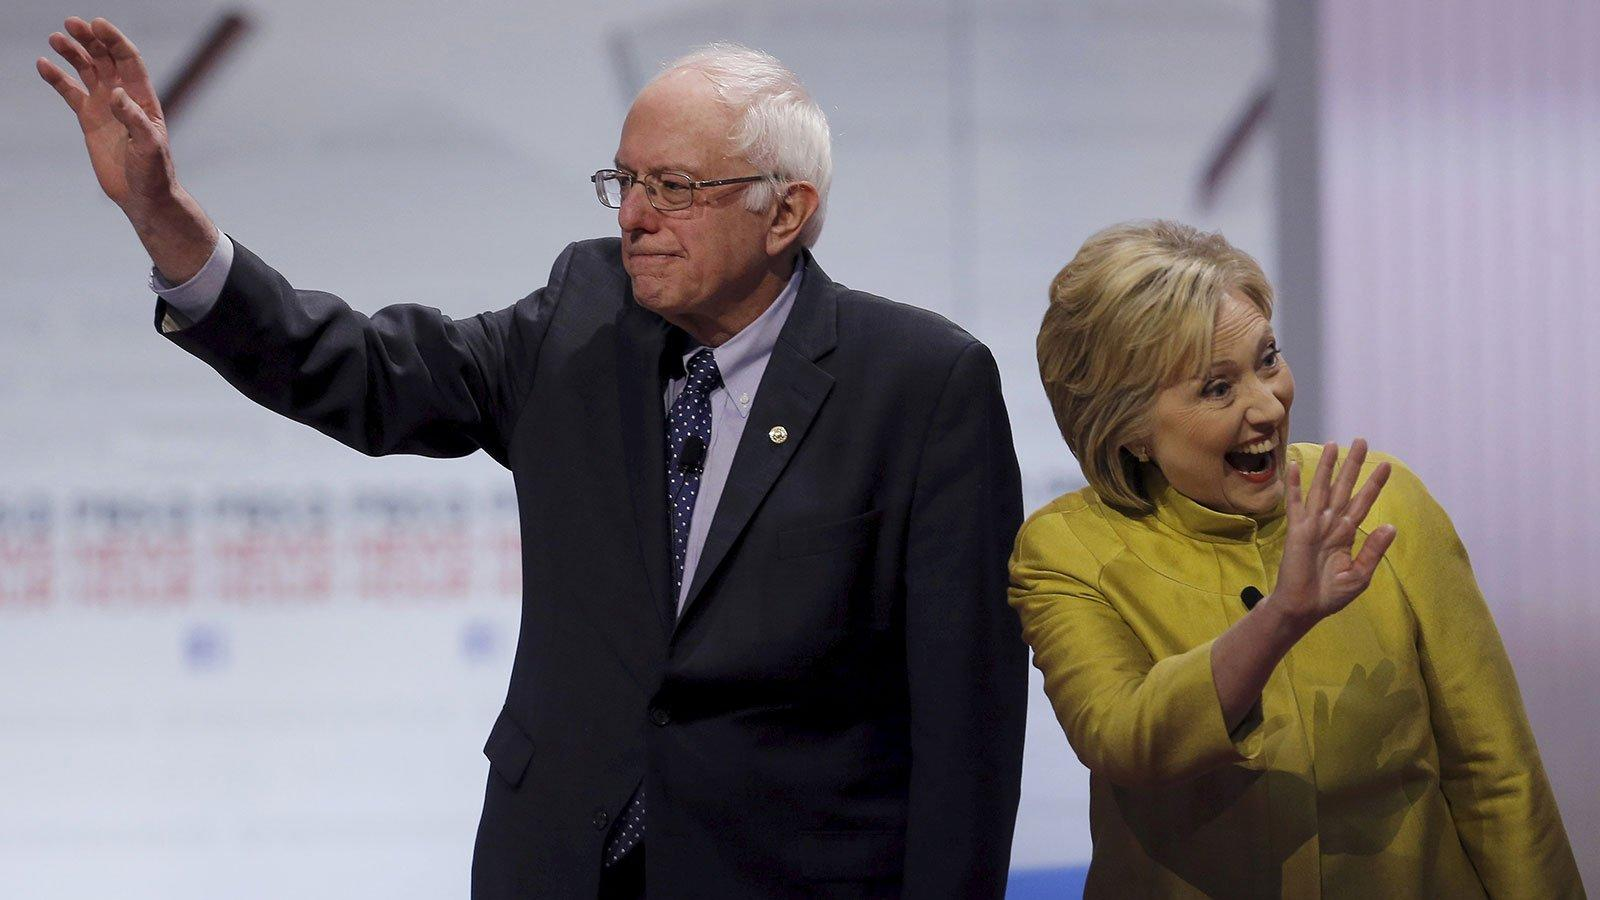 Is This Why Bernie Sanders Is Going Easy on Hillary?